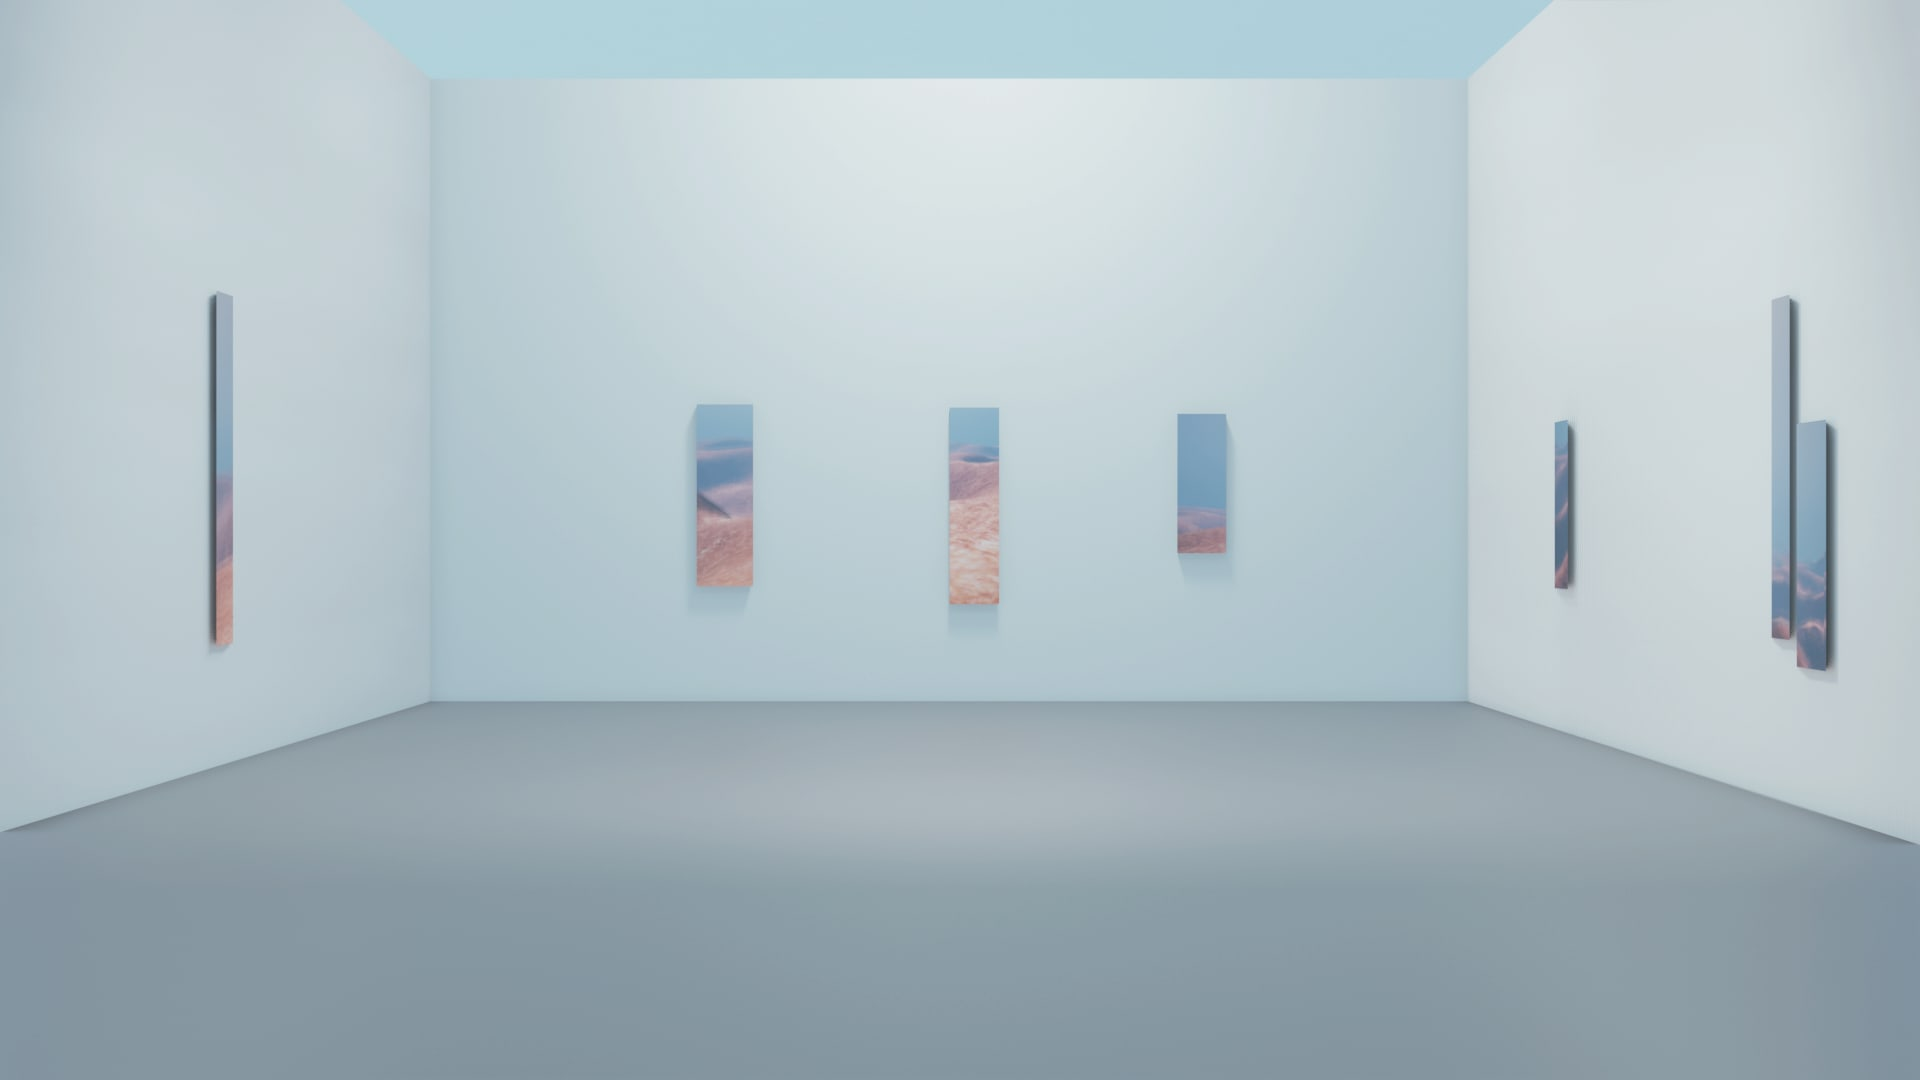 rendered_installation_view[full room]